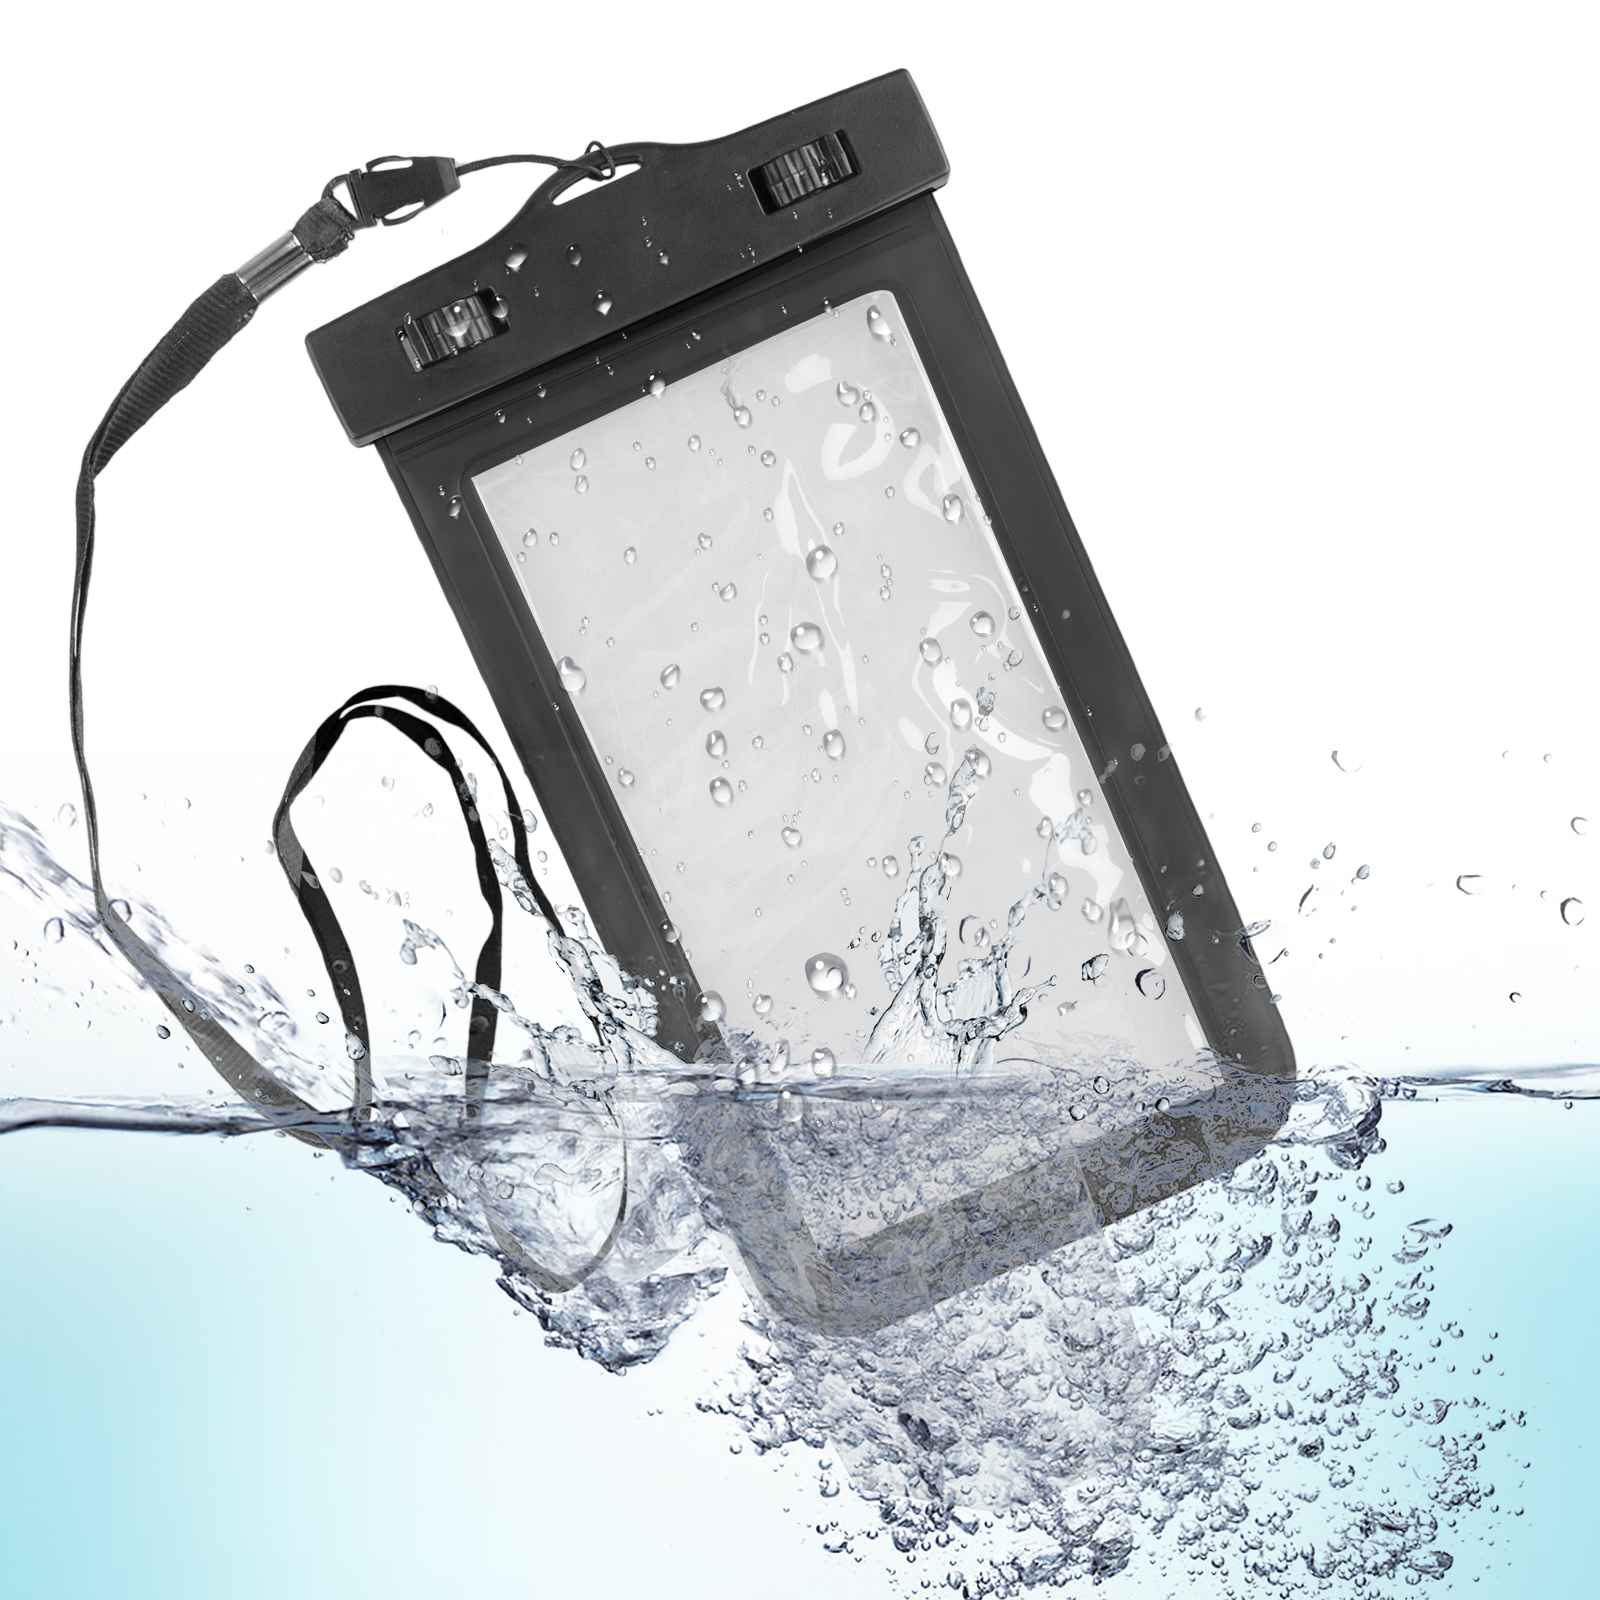 """Universal Waterproof Case, TSV Cellphone Dry Bag Pouch for iPhone X, 8/7/7 Plus/6S/6/6S Plus, Samsung Galaxy S9/S9 Plus/S8/S8 Plus/Note 8 6 5 4, Google Pixel 2 HTC LG Sony MOTO up to 6.2"""""""